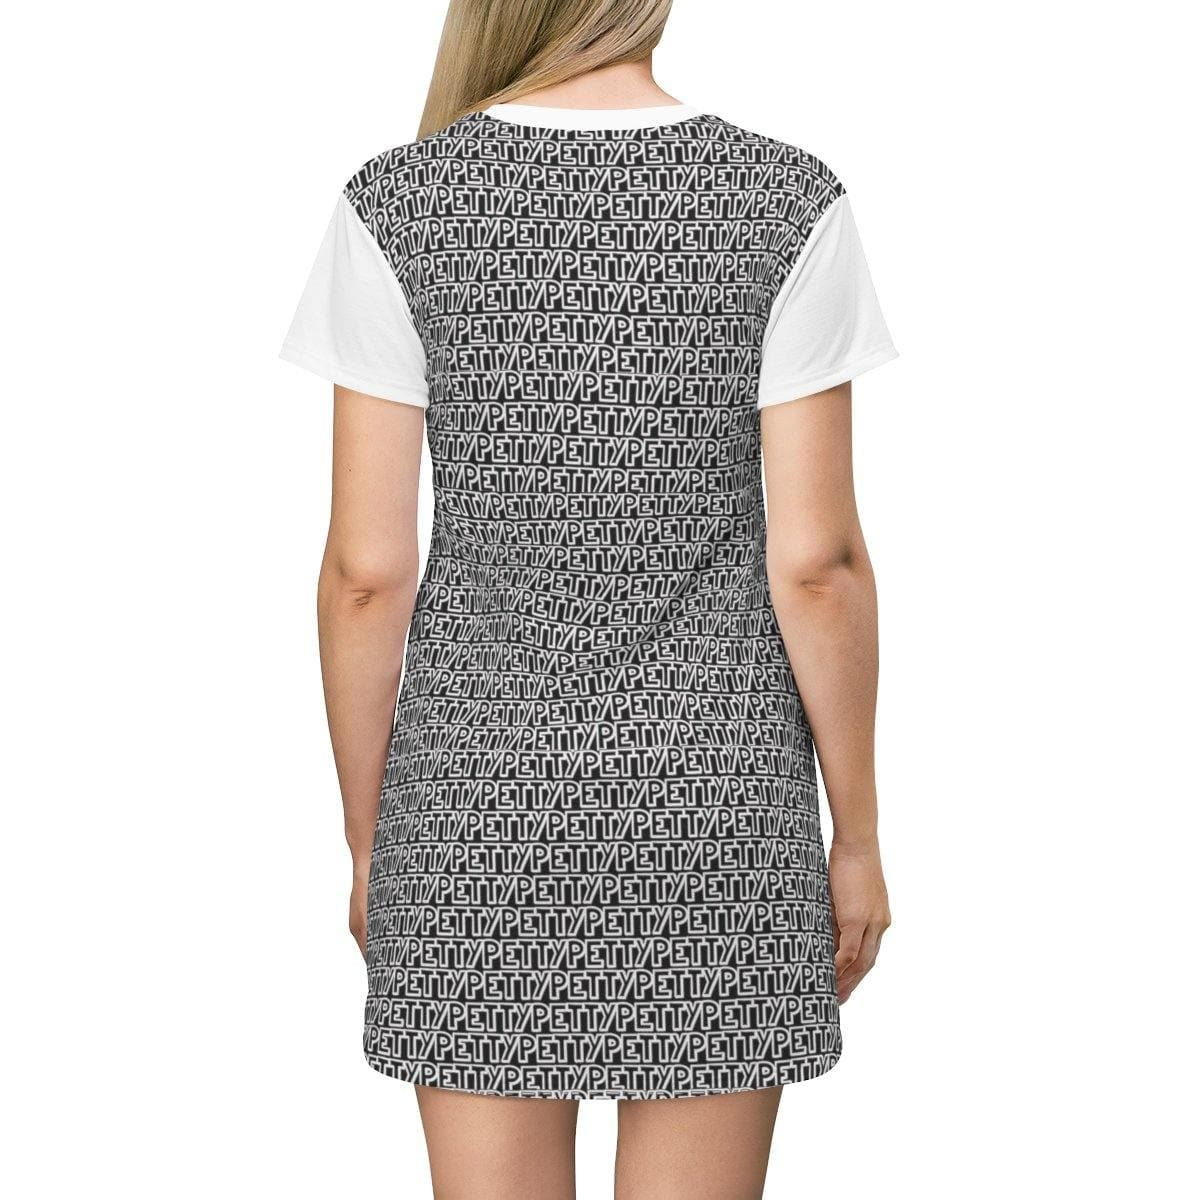 Petty Repeat T-shirt Dress - Black - Tie-Fly